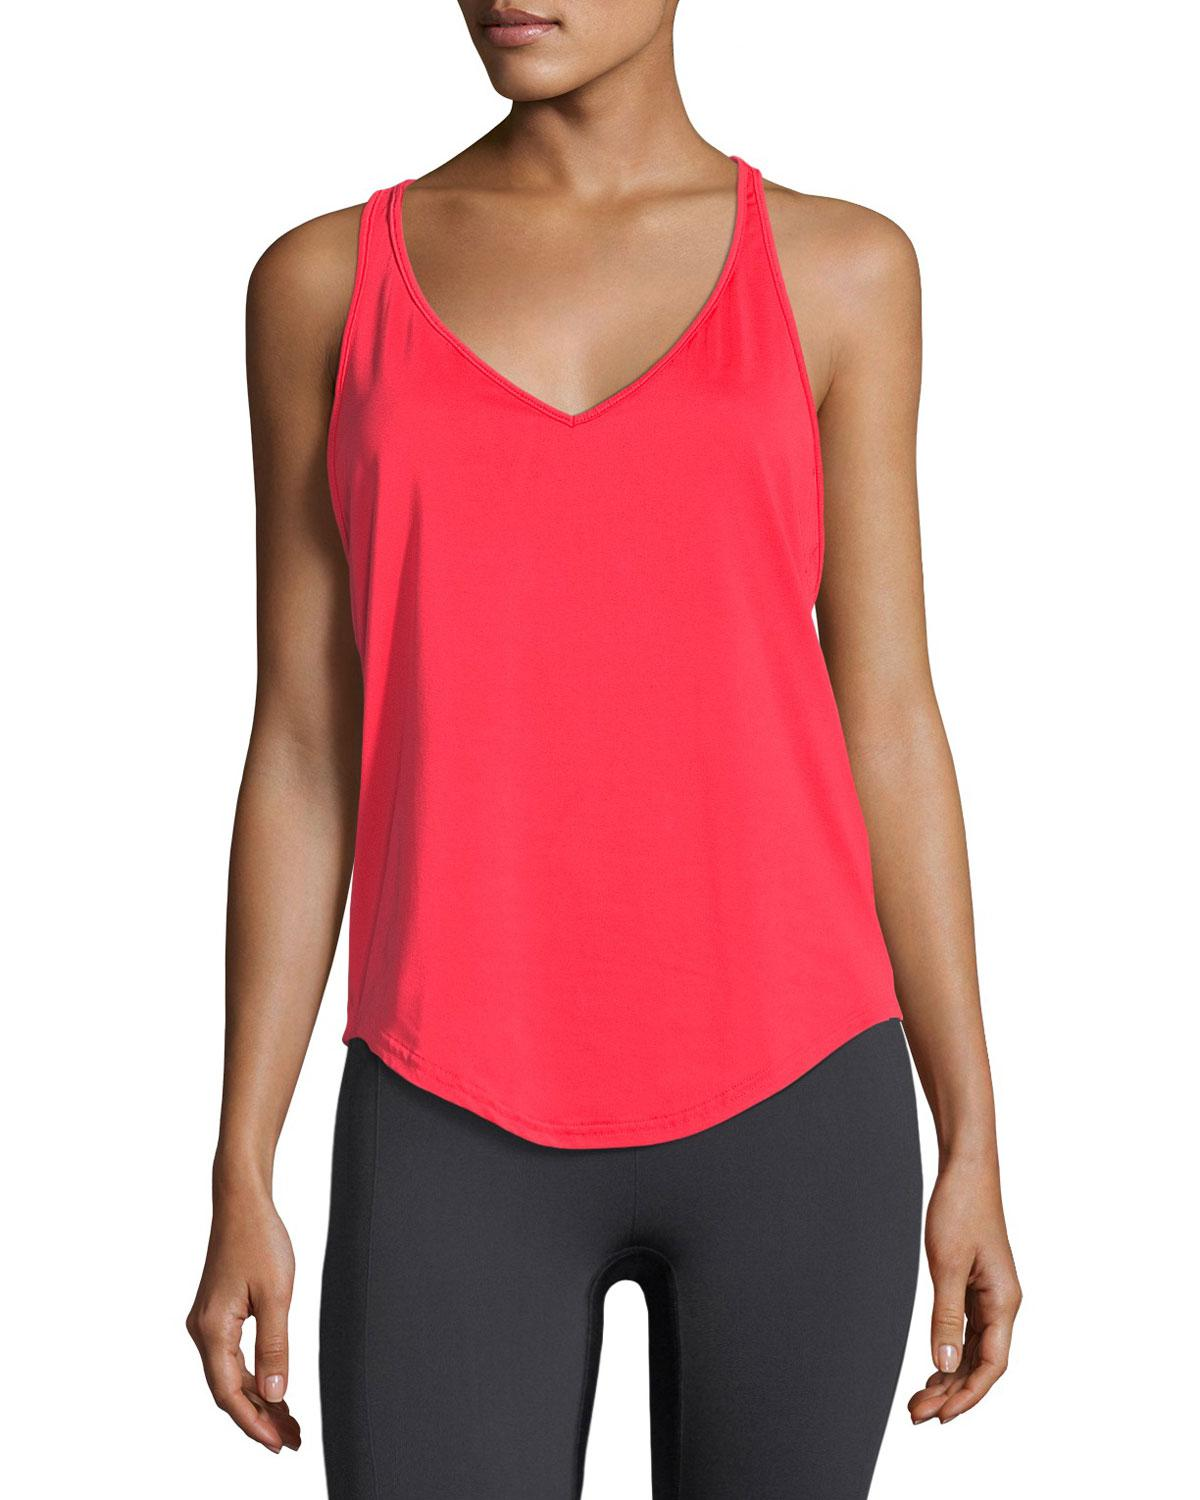 d711e6c112503 Lyst - Under Armour Flashy Racerback Performance Tank Top in Red